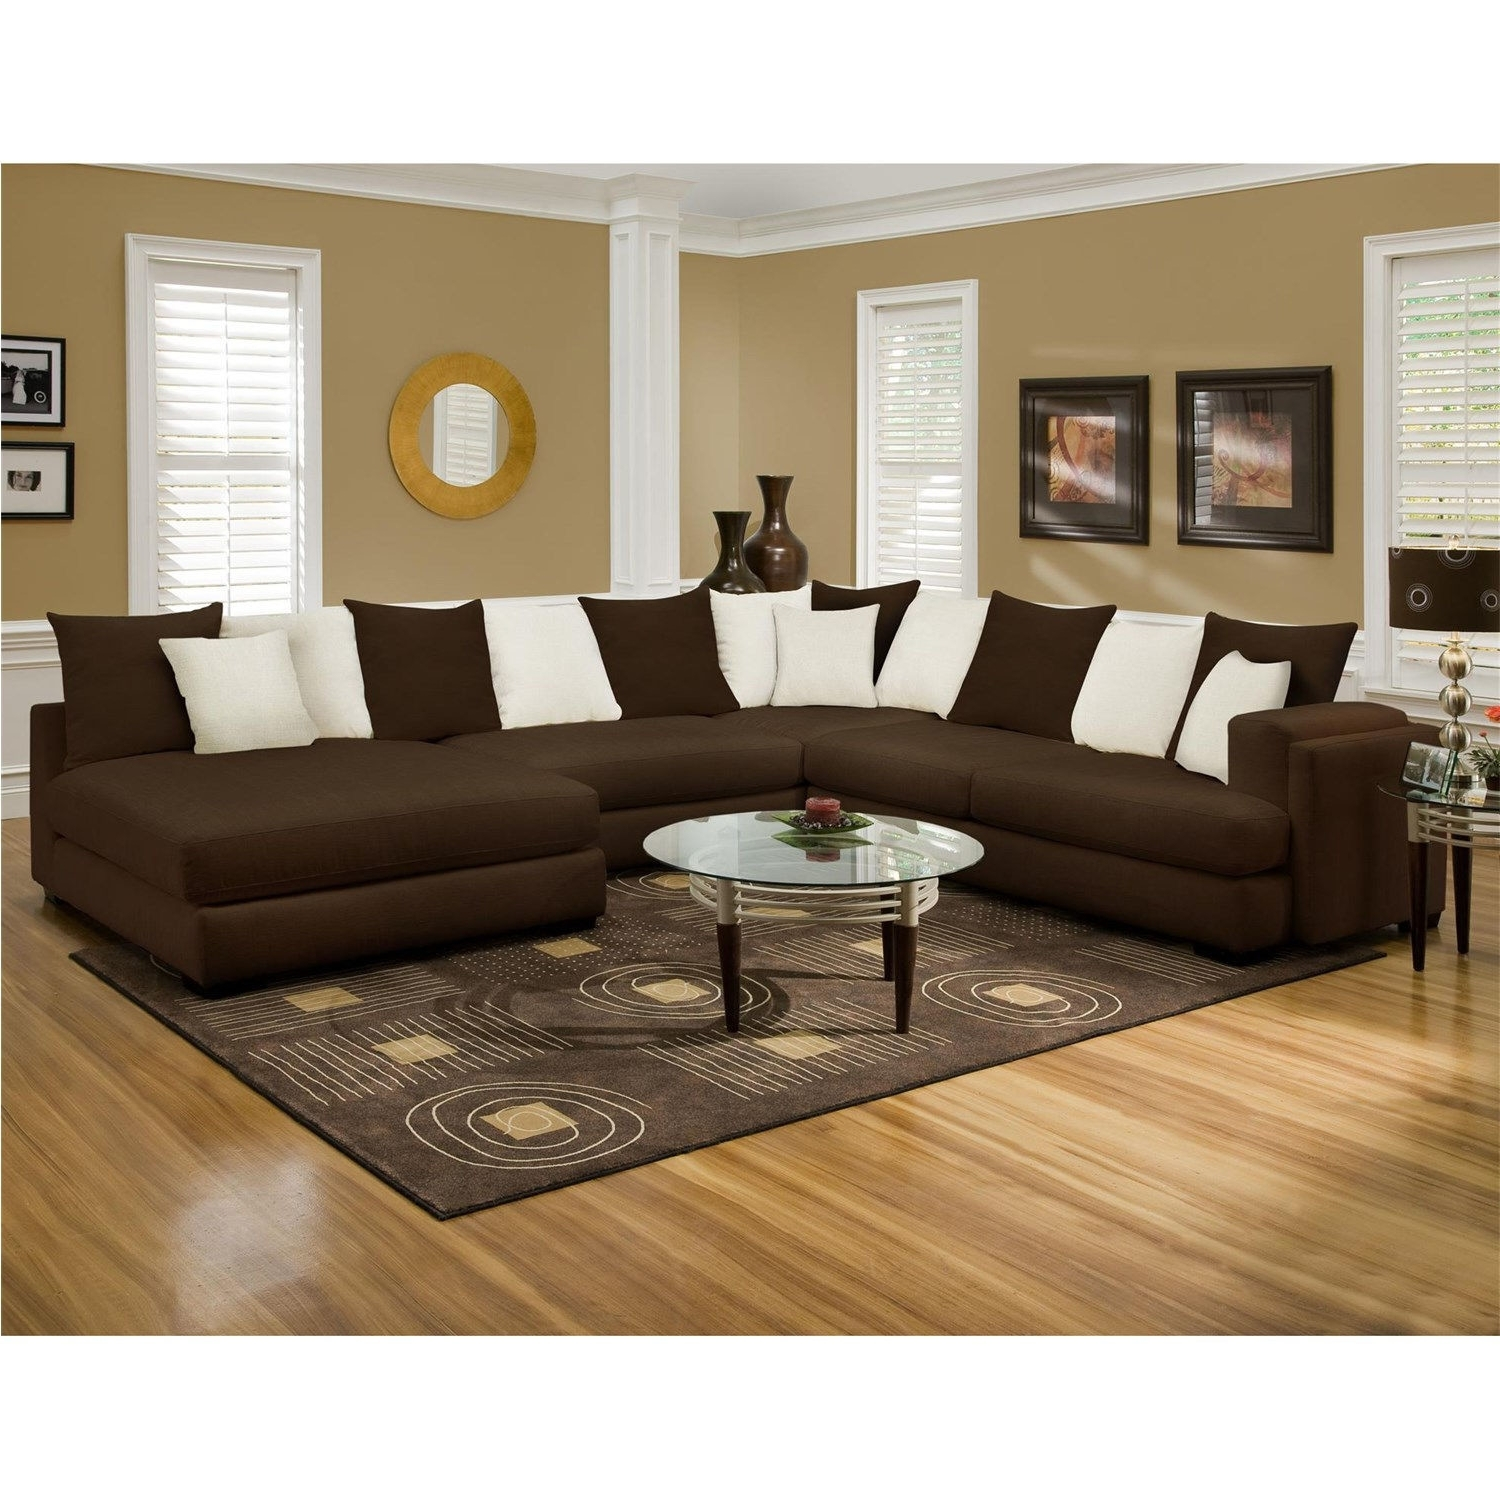 Most Current Sectional Sofas In Houston Tx With Regard To Lb Discount Furniture Sectional Sofas Houston Tx Bel Furniture (View 8 of 15)